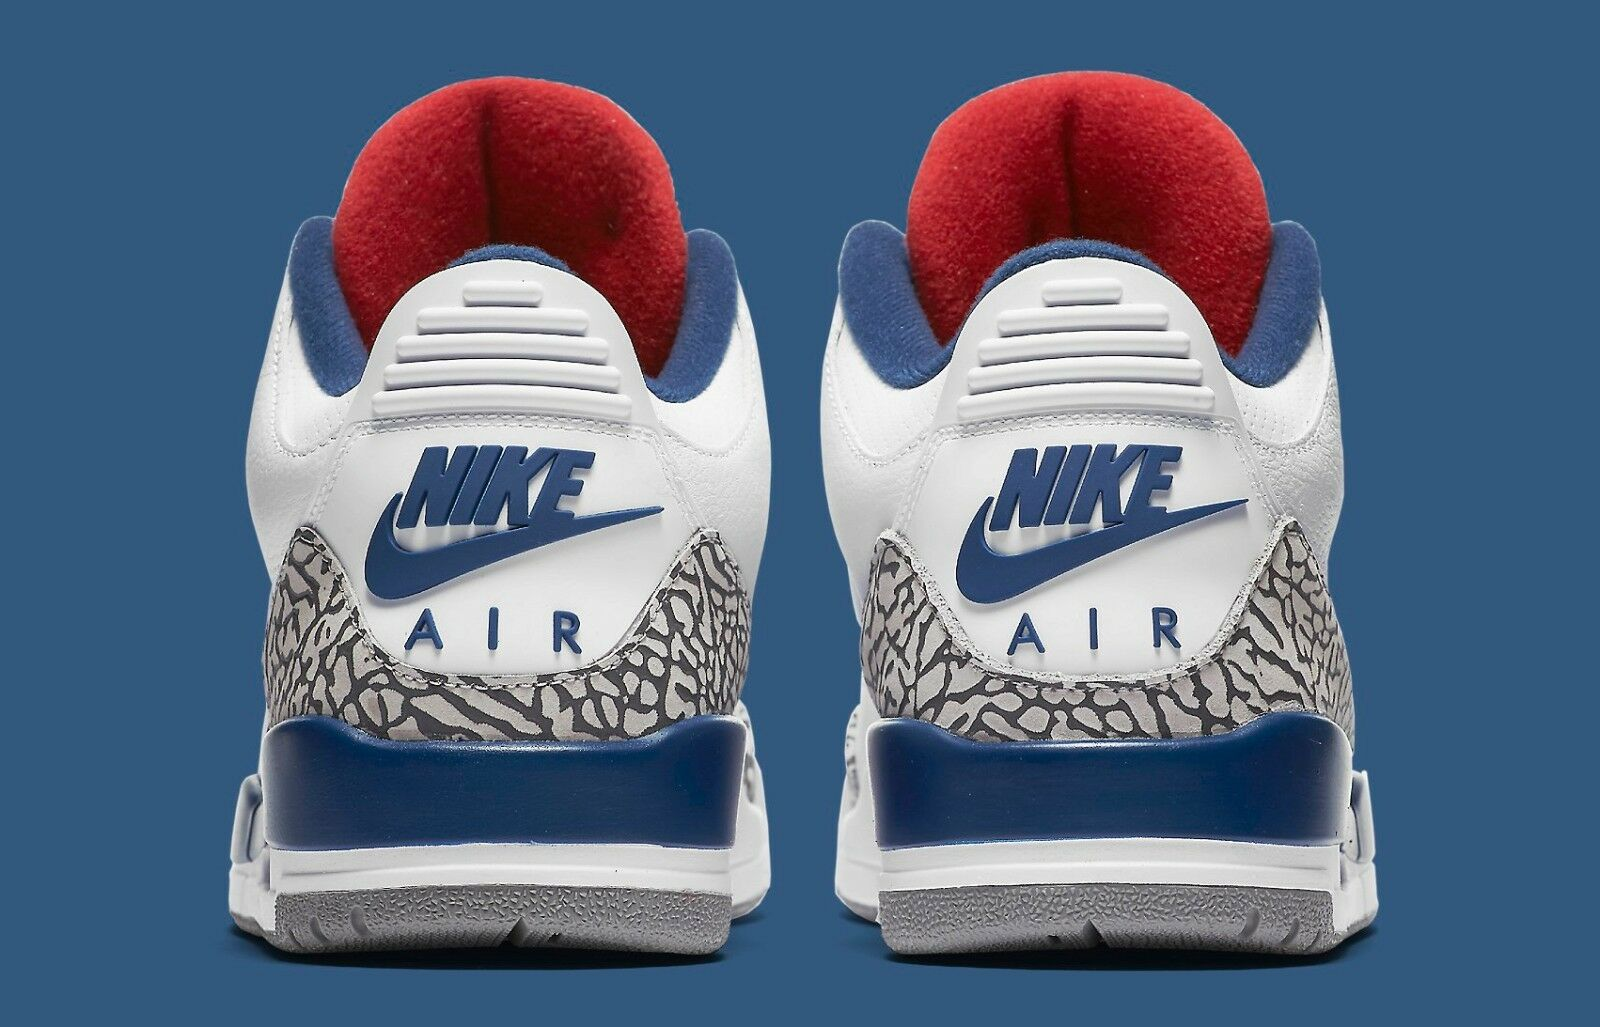 2016 Nike Air Jordan 3 III Retro OG True Blue 854262-106 White Cement Size 9.5. 854262-106 Blue 43593f